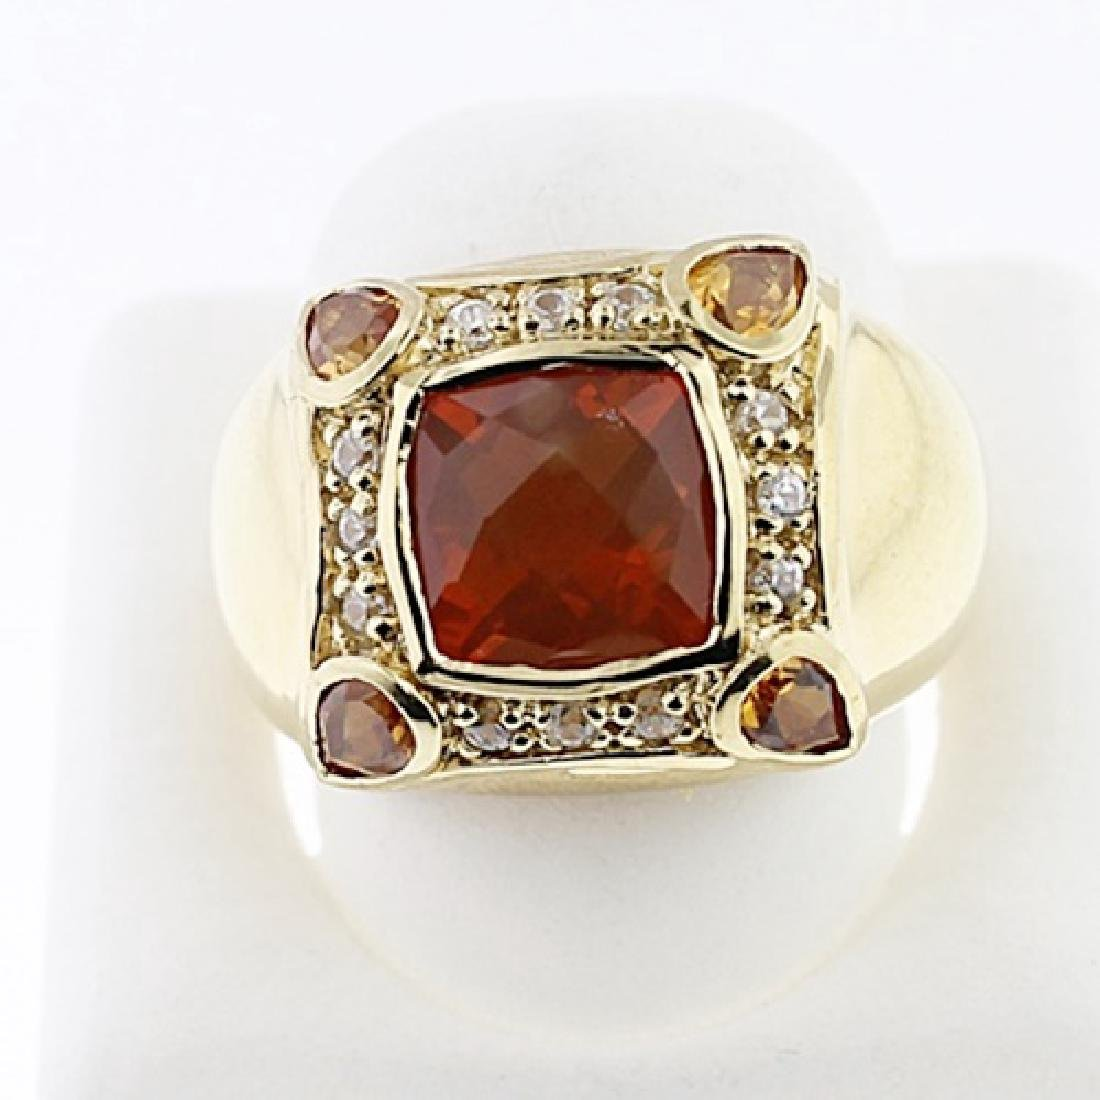 SILVER RING WITH FIRE OPAL, CITRENE AND WHITE ZIRCON